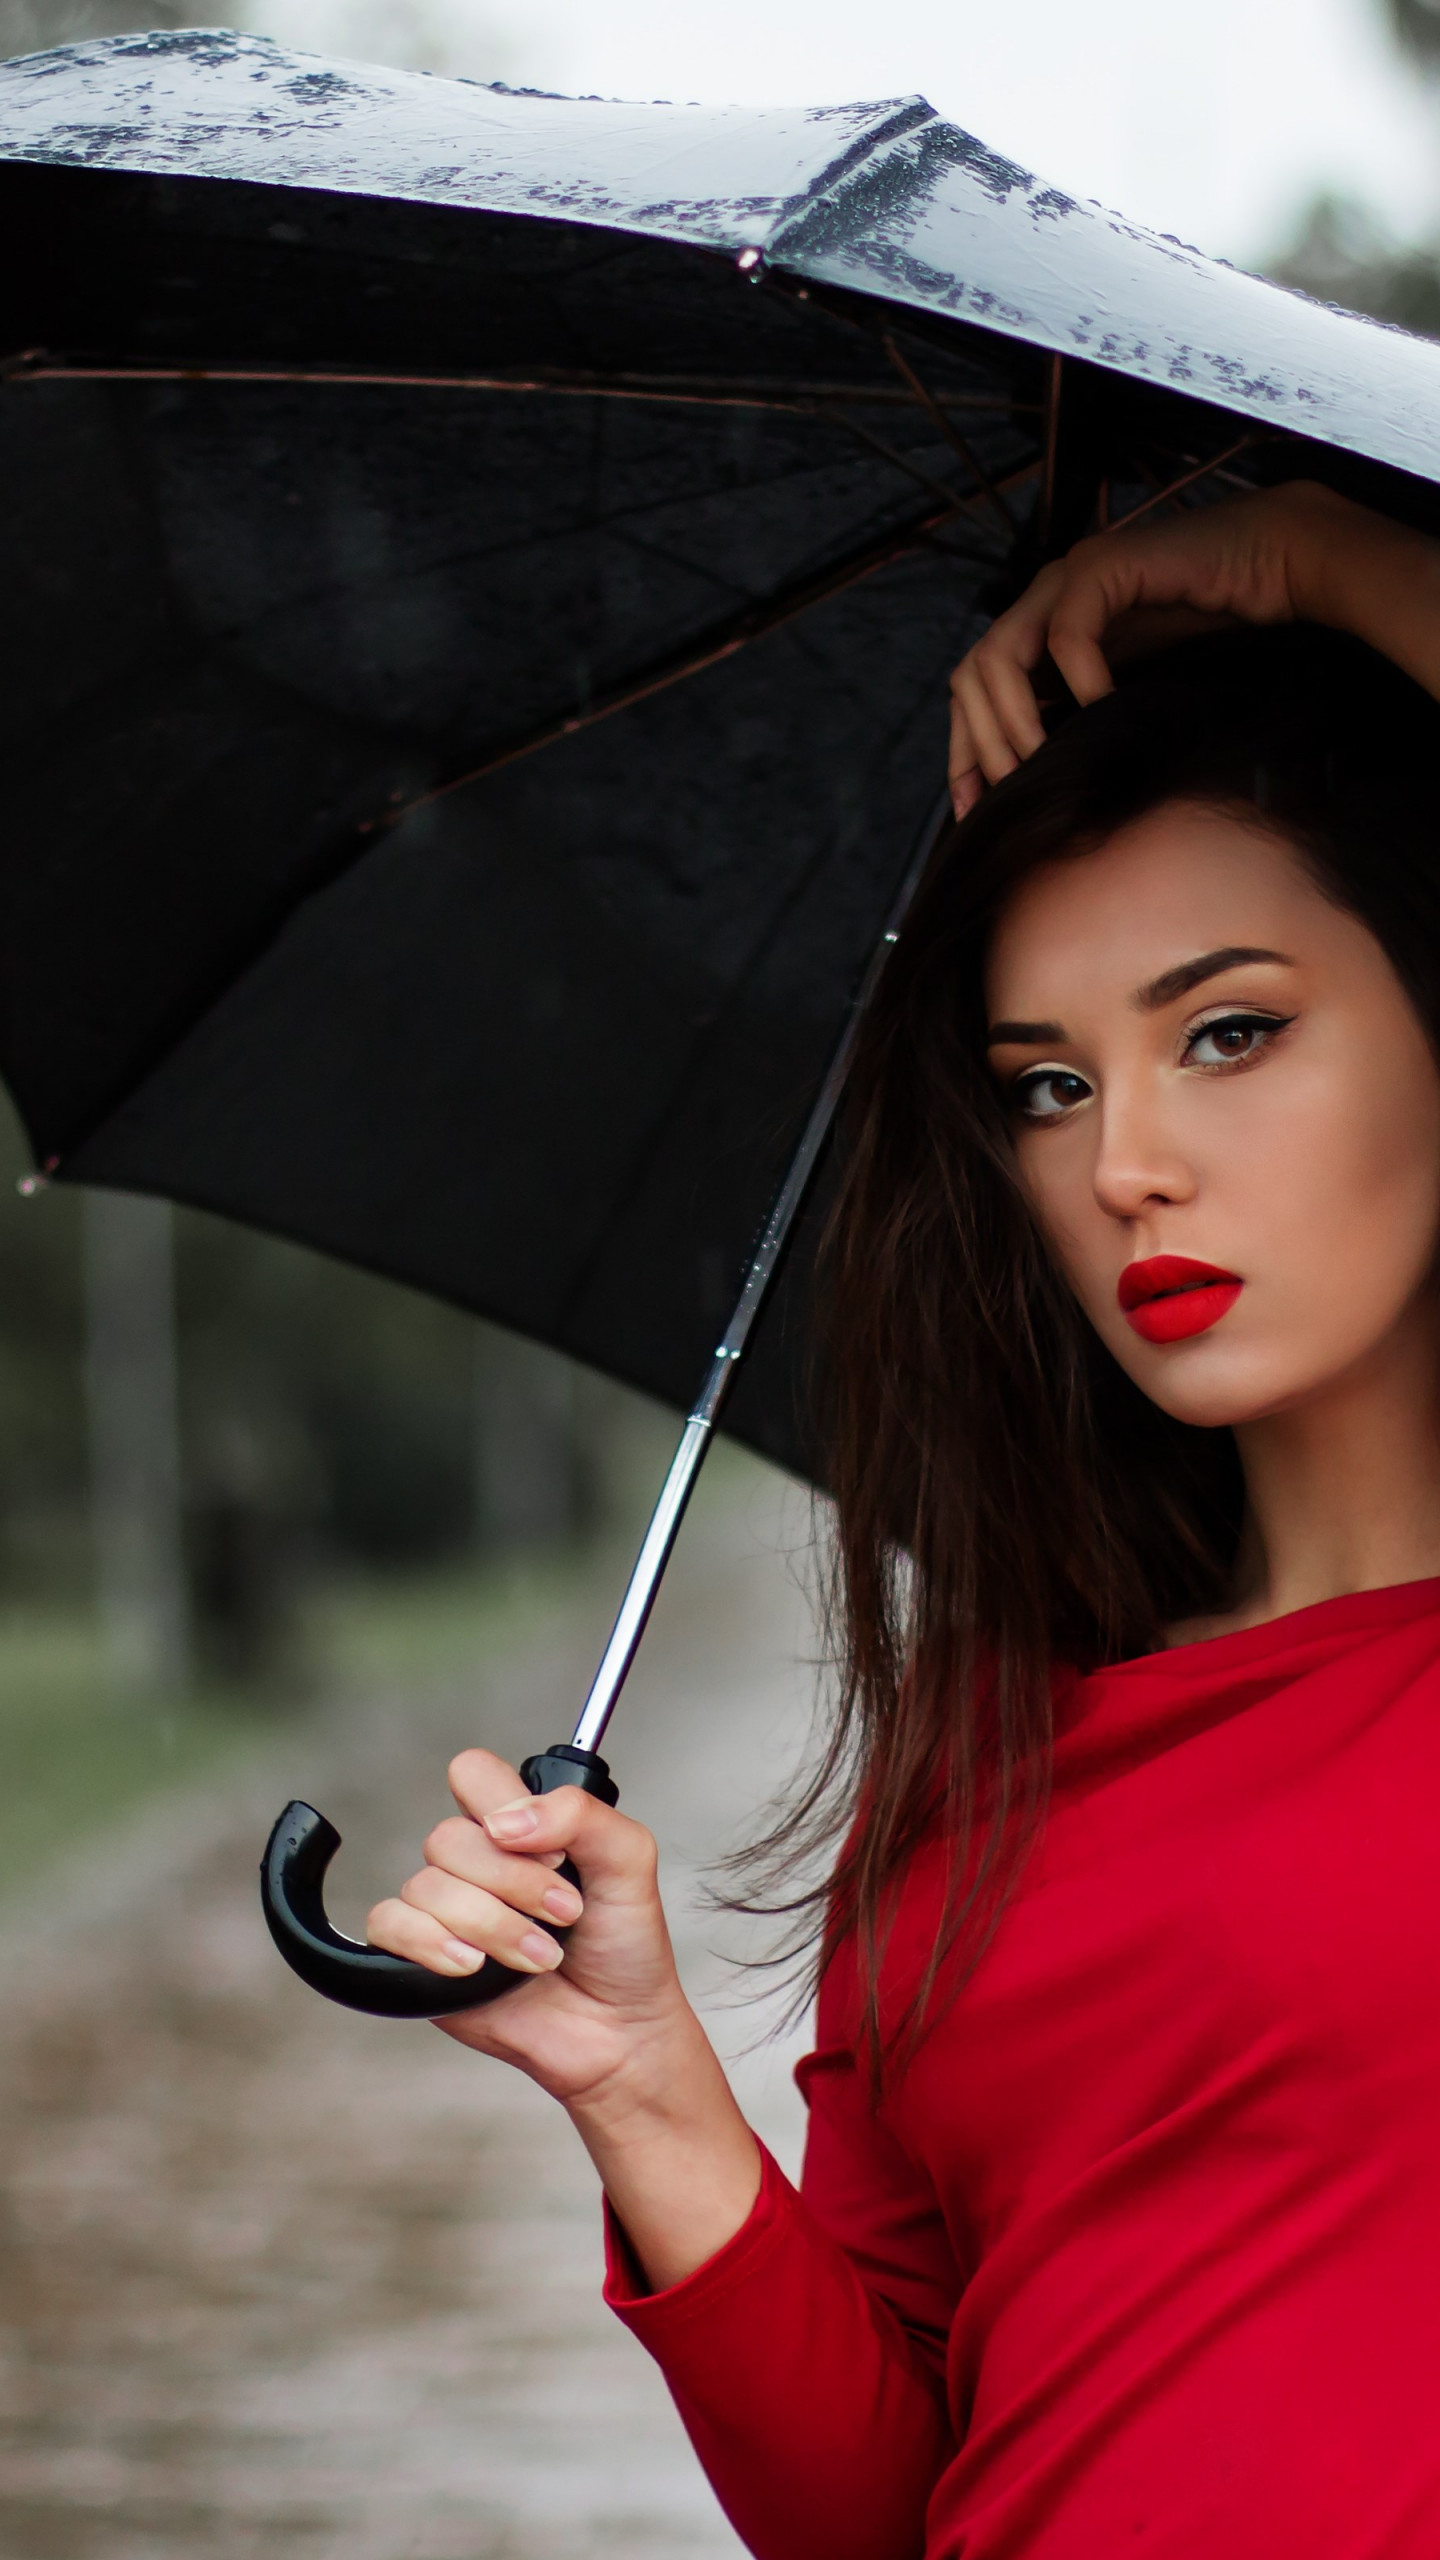 Beauitful girl in a rainy day wallpaper 1440x2560